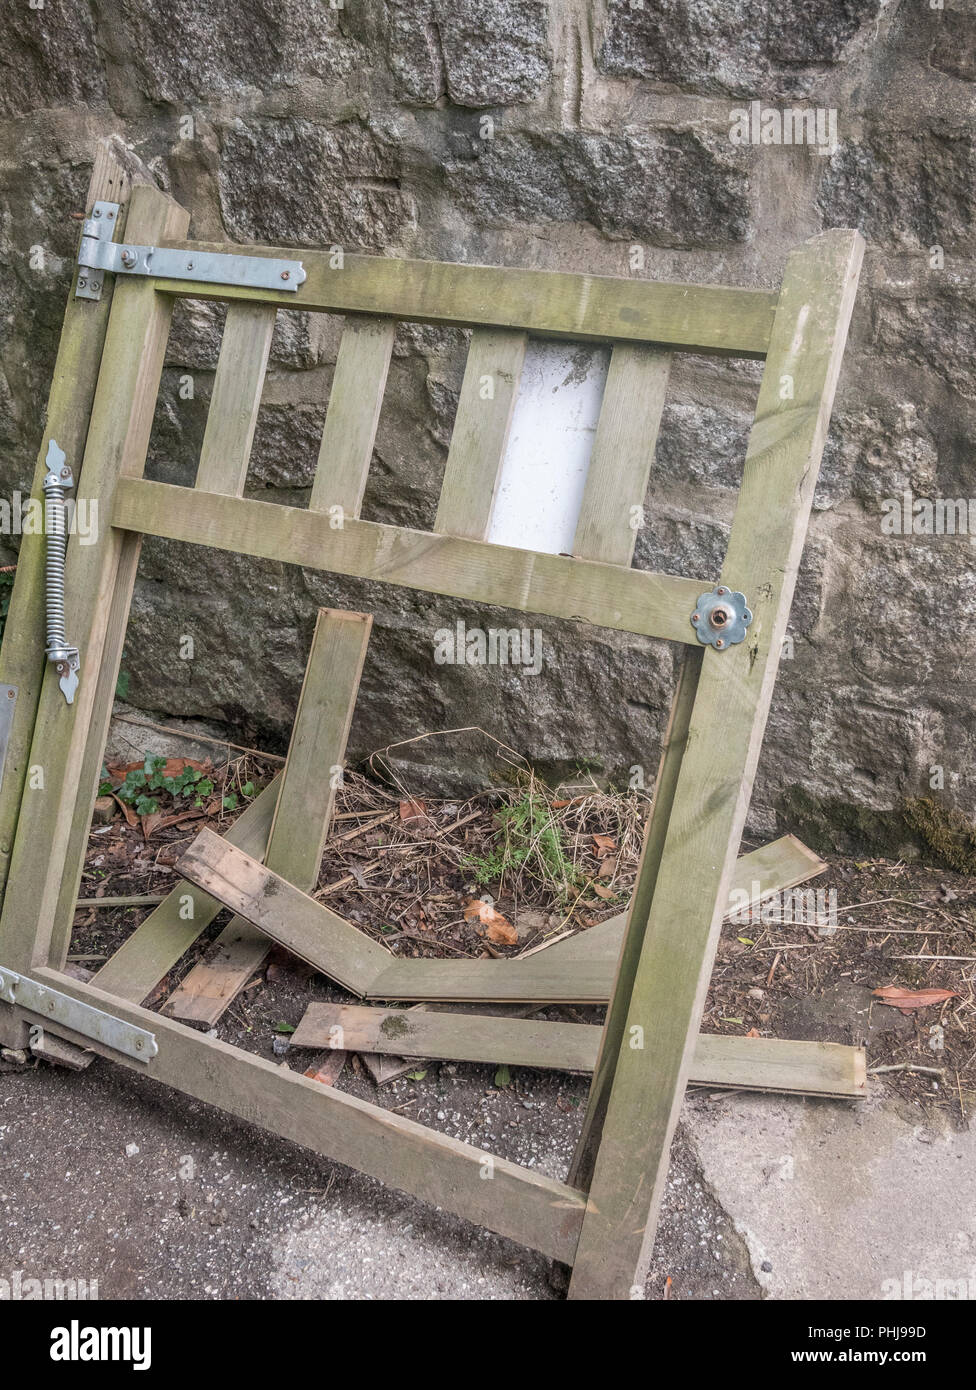 Broken / smashed garden gate propped against stone wall. - Stock Image